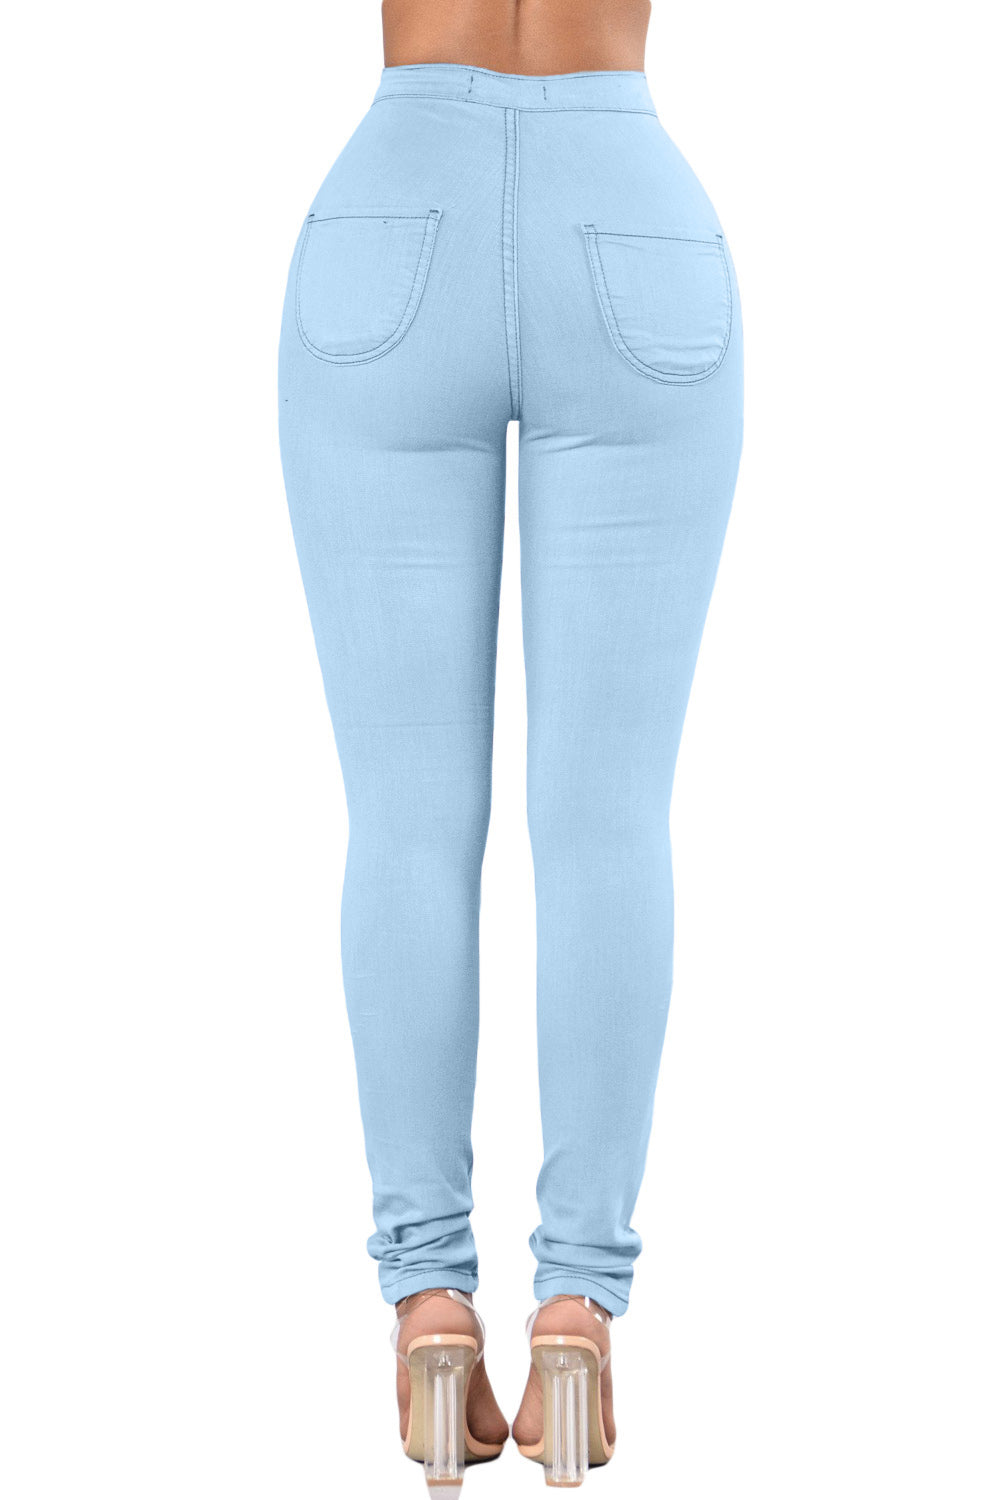 Light Blue High Waist Skinny Jeans With Round Pockets LAVELIQ